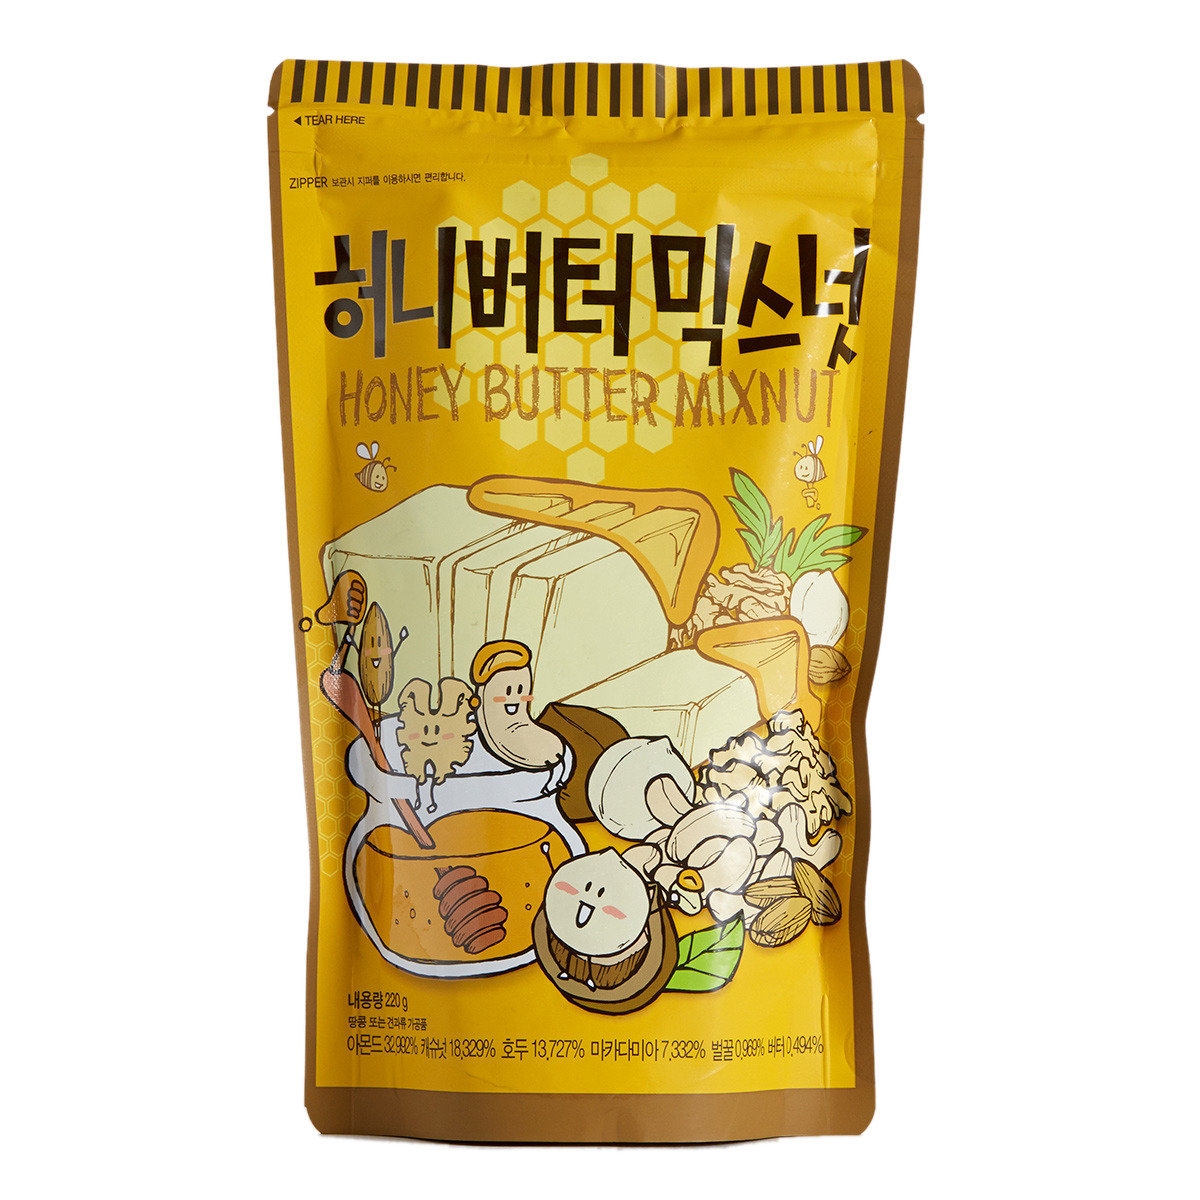 Honey butter mixnut